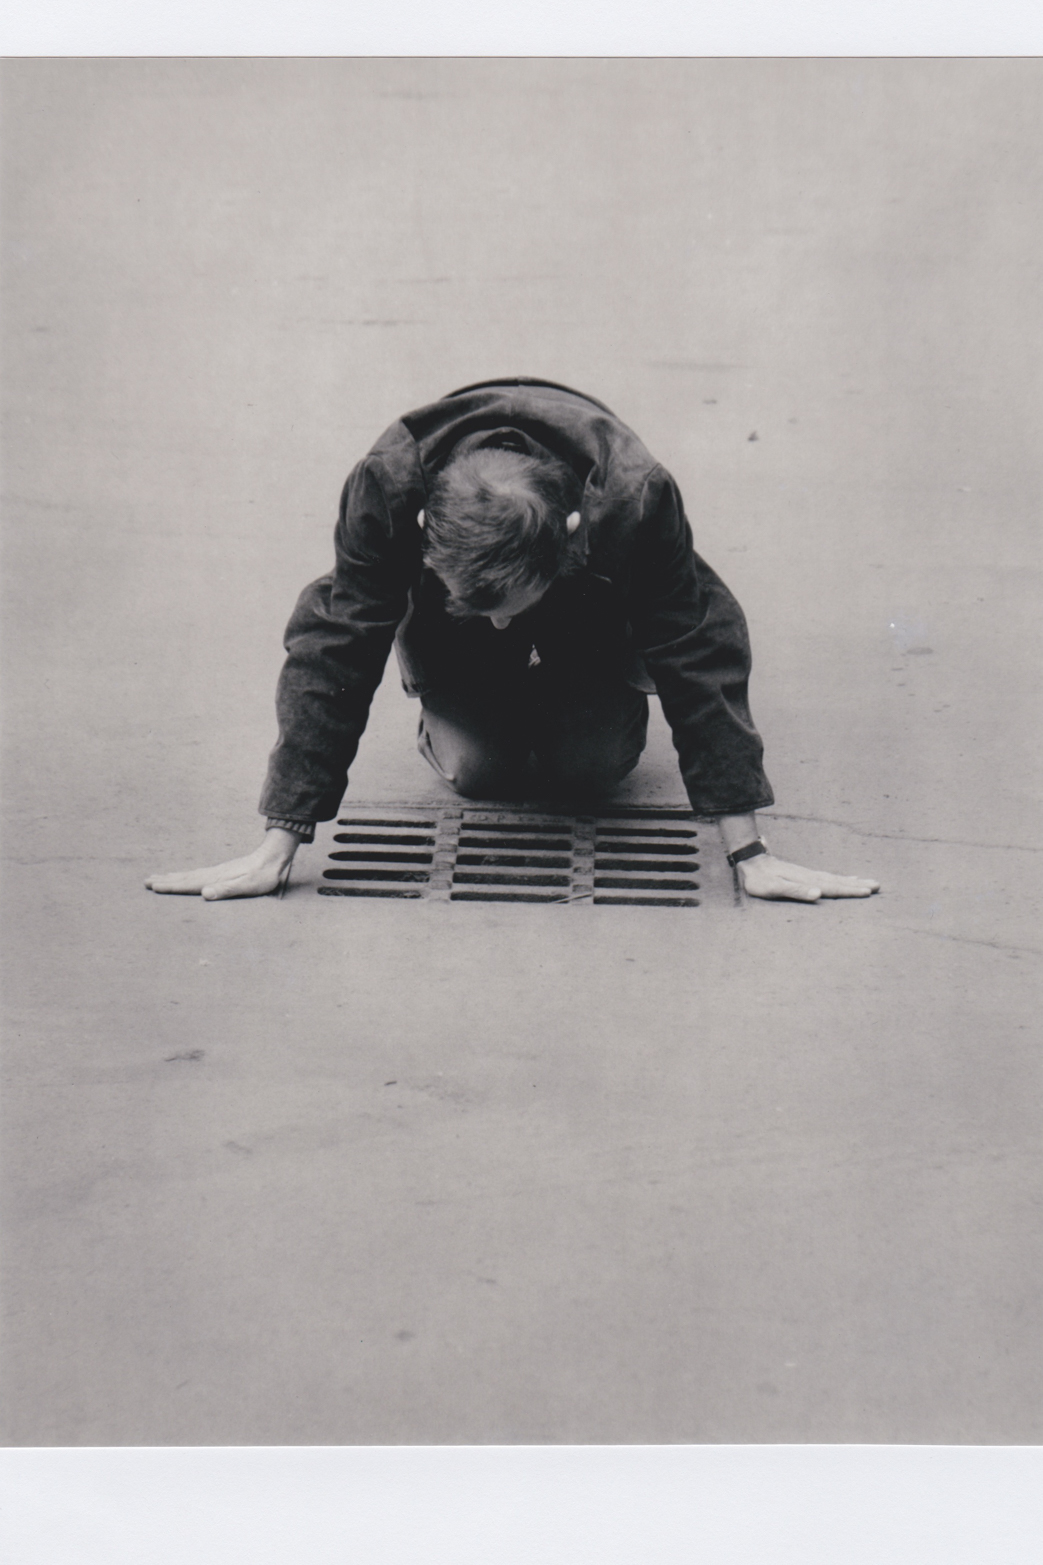 Karel Miler, Grating, 1974. Courtesy of SVIT Prague and Tenderpixel.